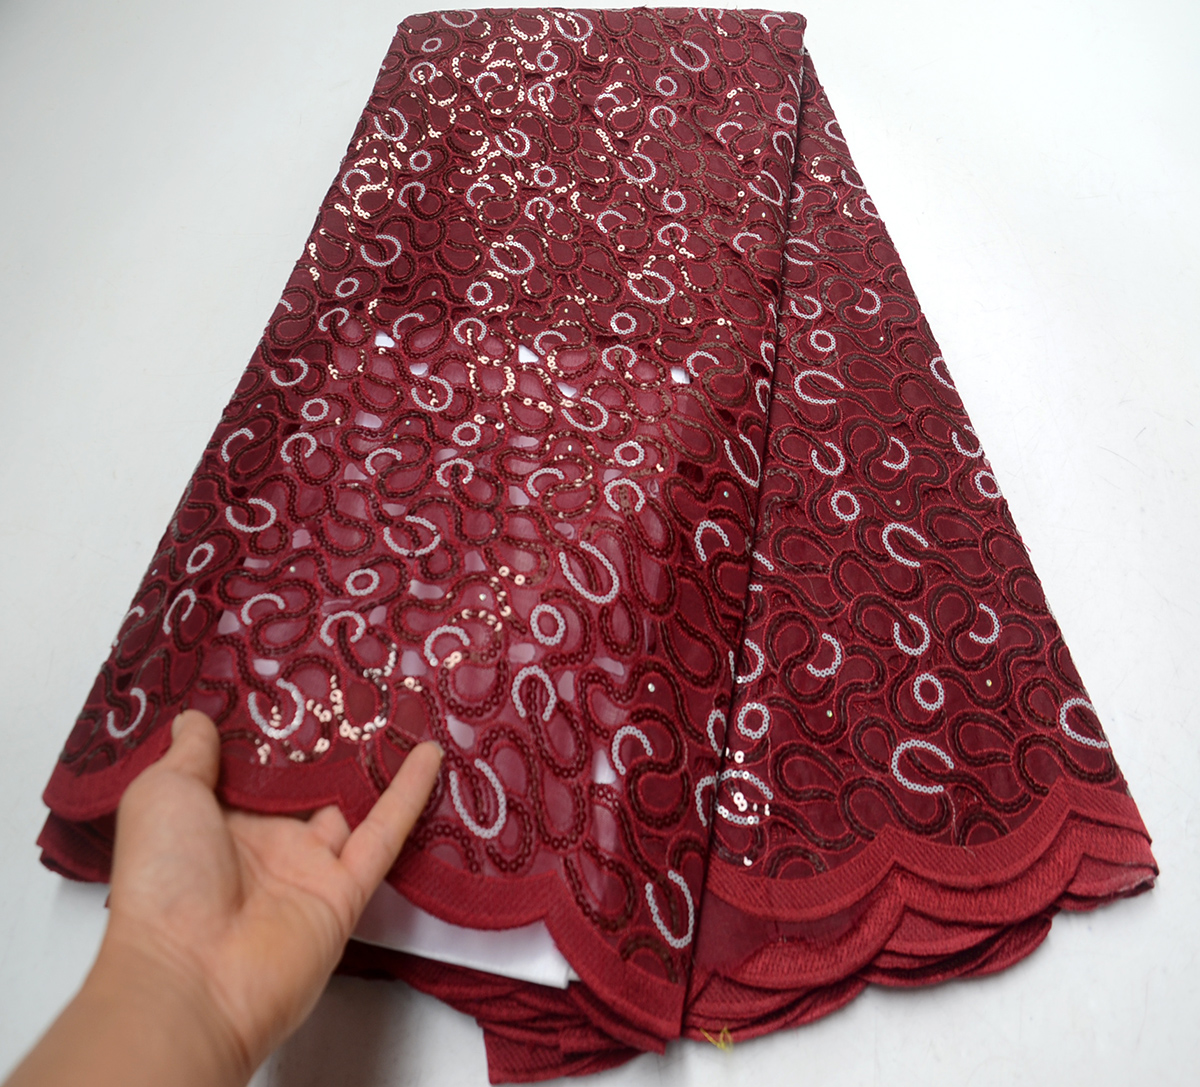 African Lace Fabric 2019 Wine High Quality Organza Lace Fabric Sequins Fabric Embroidery Nigerian Wedding Lace Fabric For 5yardAfrican Lace Fabric 2019 Wine High Quality Organza Lace Fabric Sequins Fabric Embroidery Nigerian Wedding Lace Fabric For 5yard